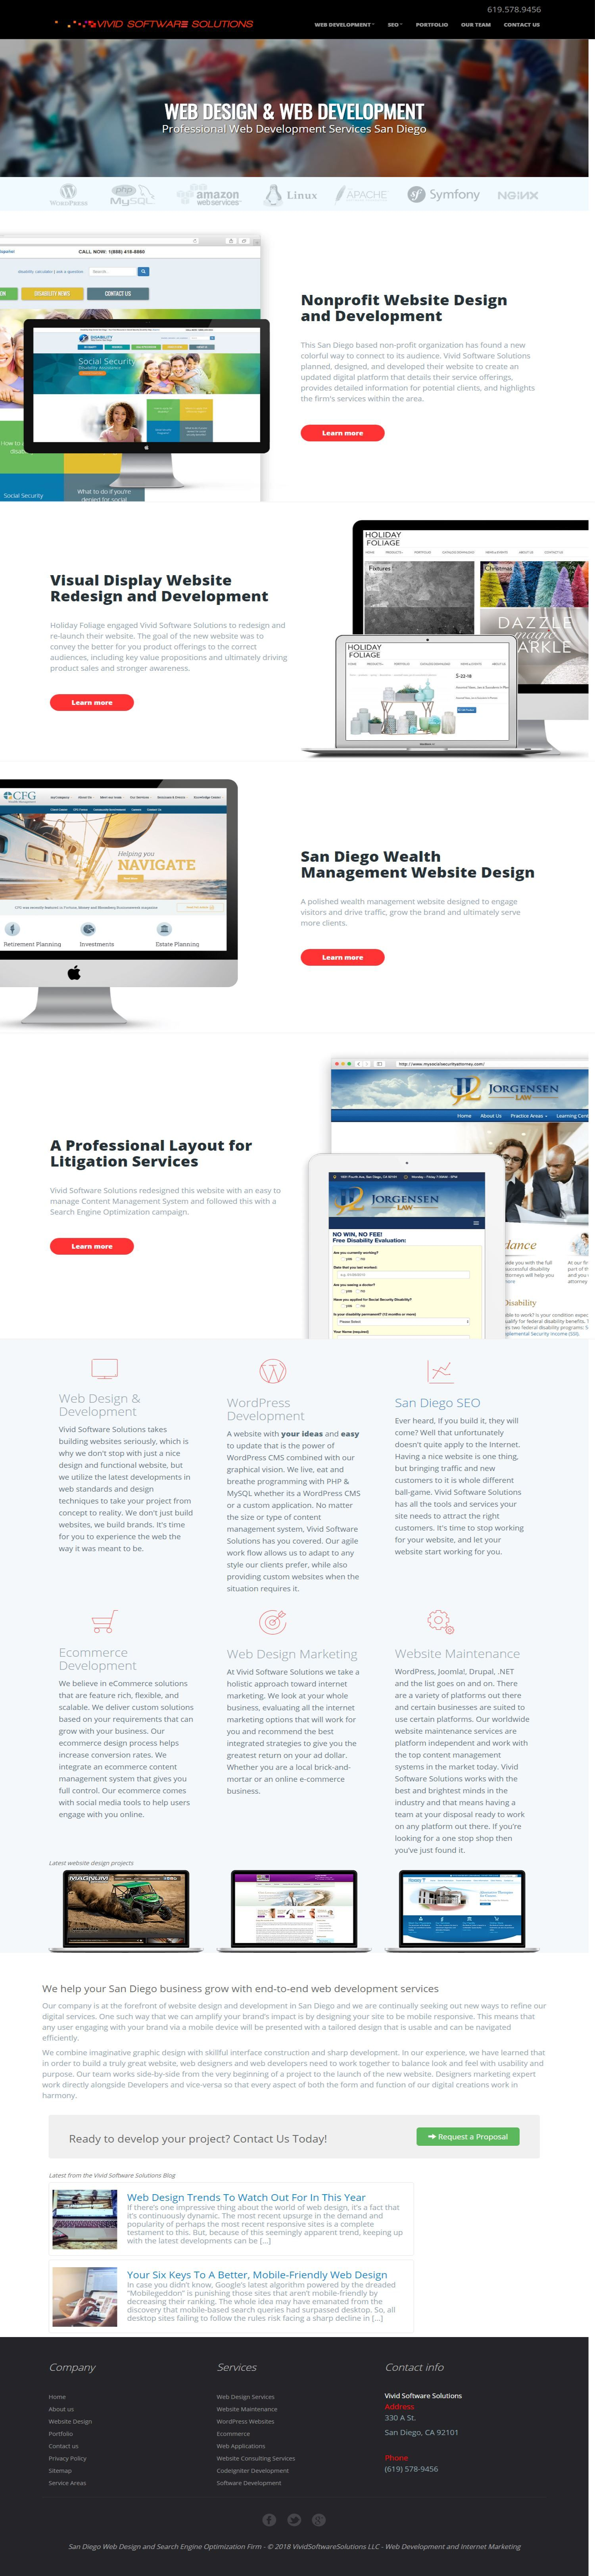 Vivid Software Solutions Is One Of San Diego S Top Web Design Firms And They Got Here By Putting Their Web Design Web Design Firm Professional Website Design